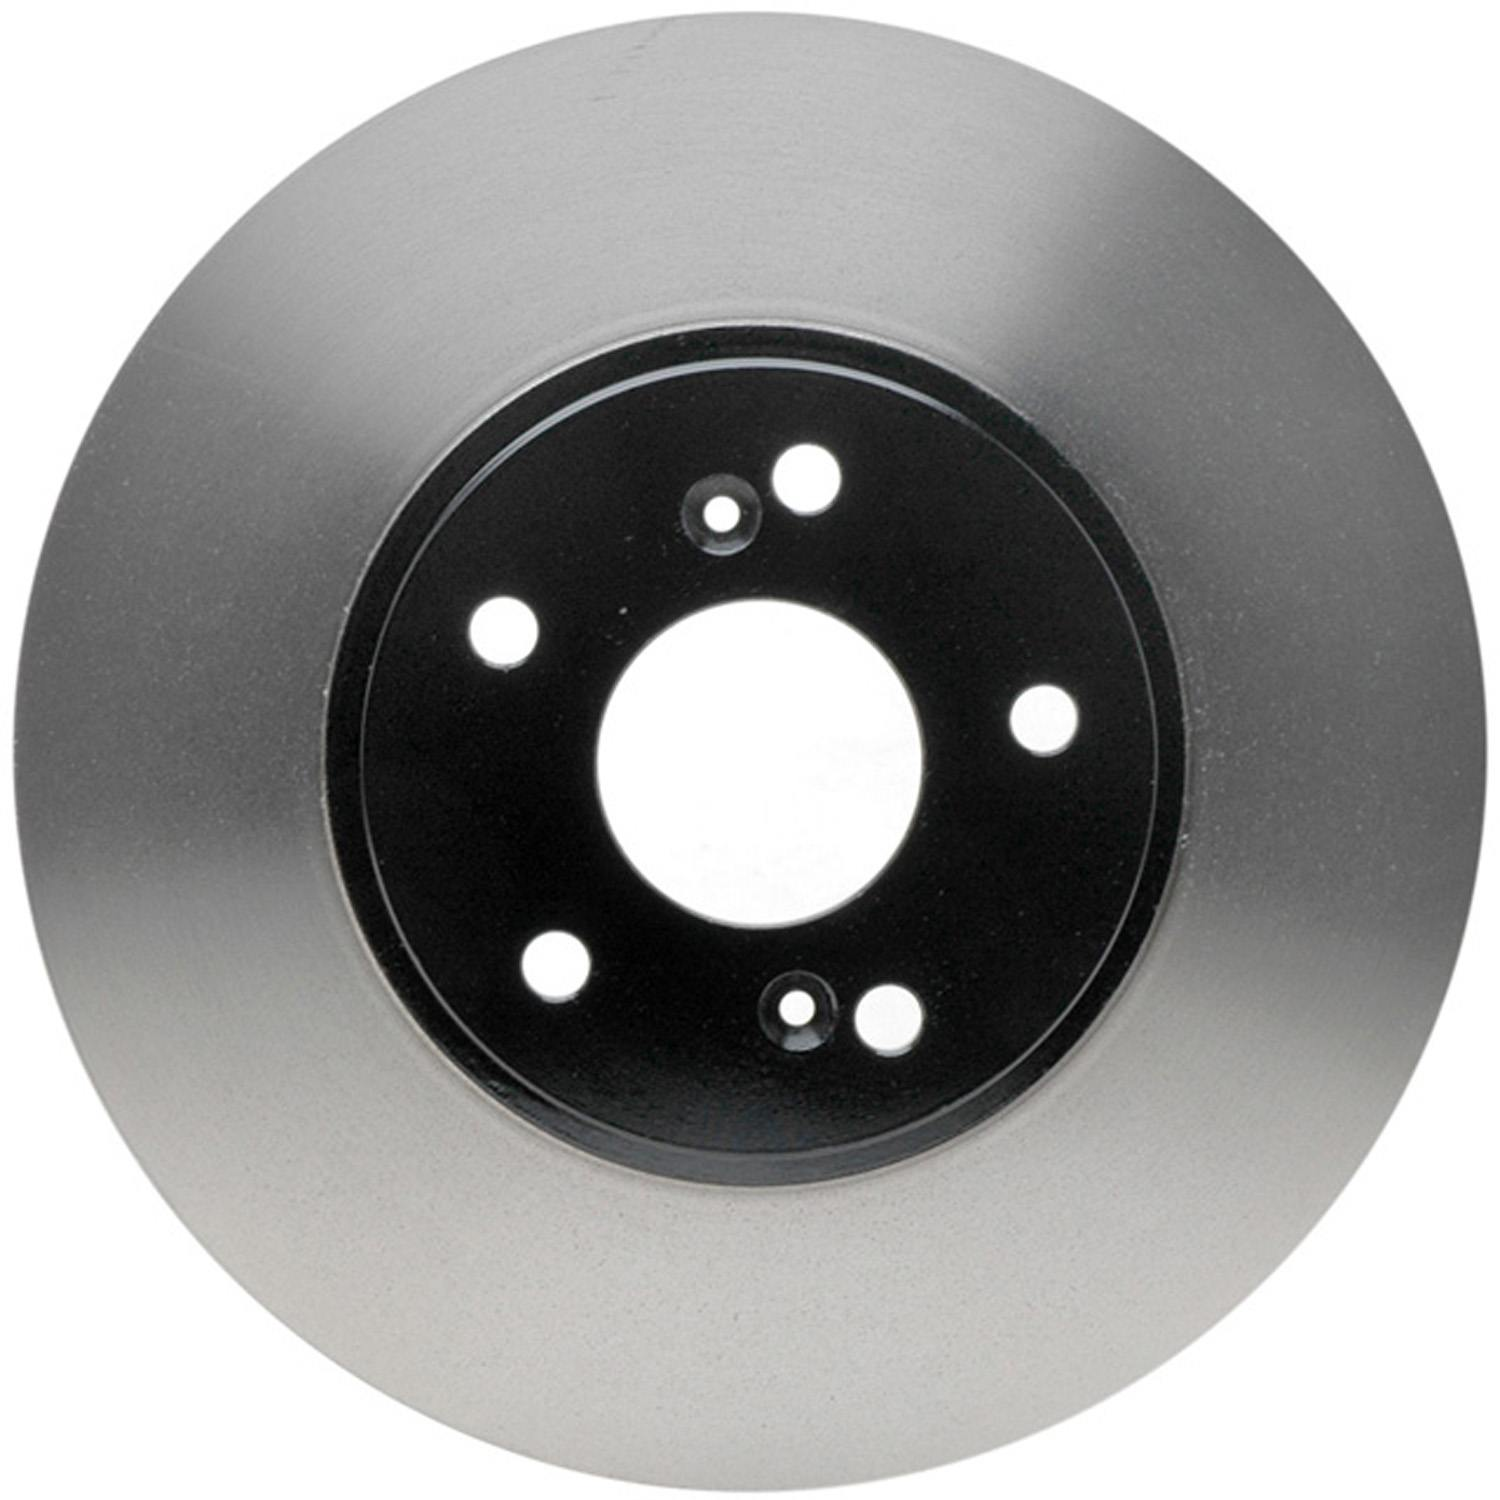 ACDELCO GOLD/PROFESSIONAL BRAKES - Black Hat - ADU 18A1095